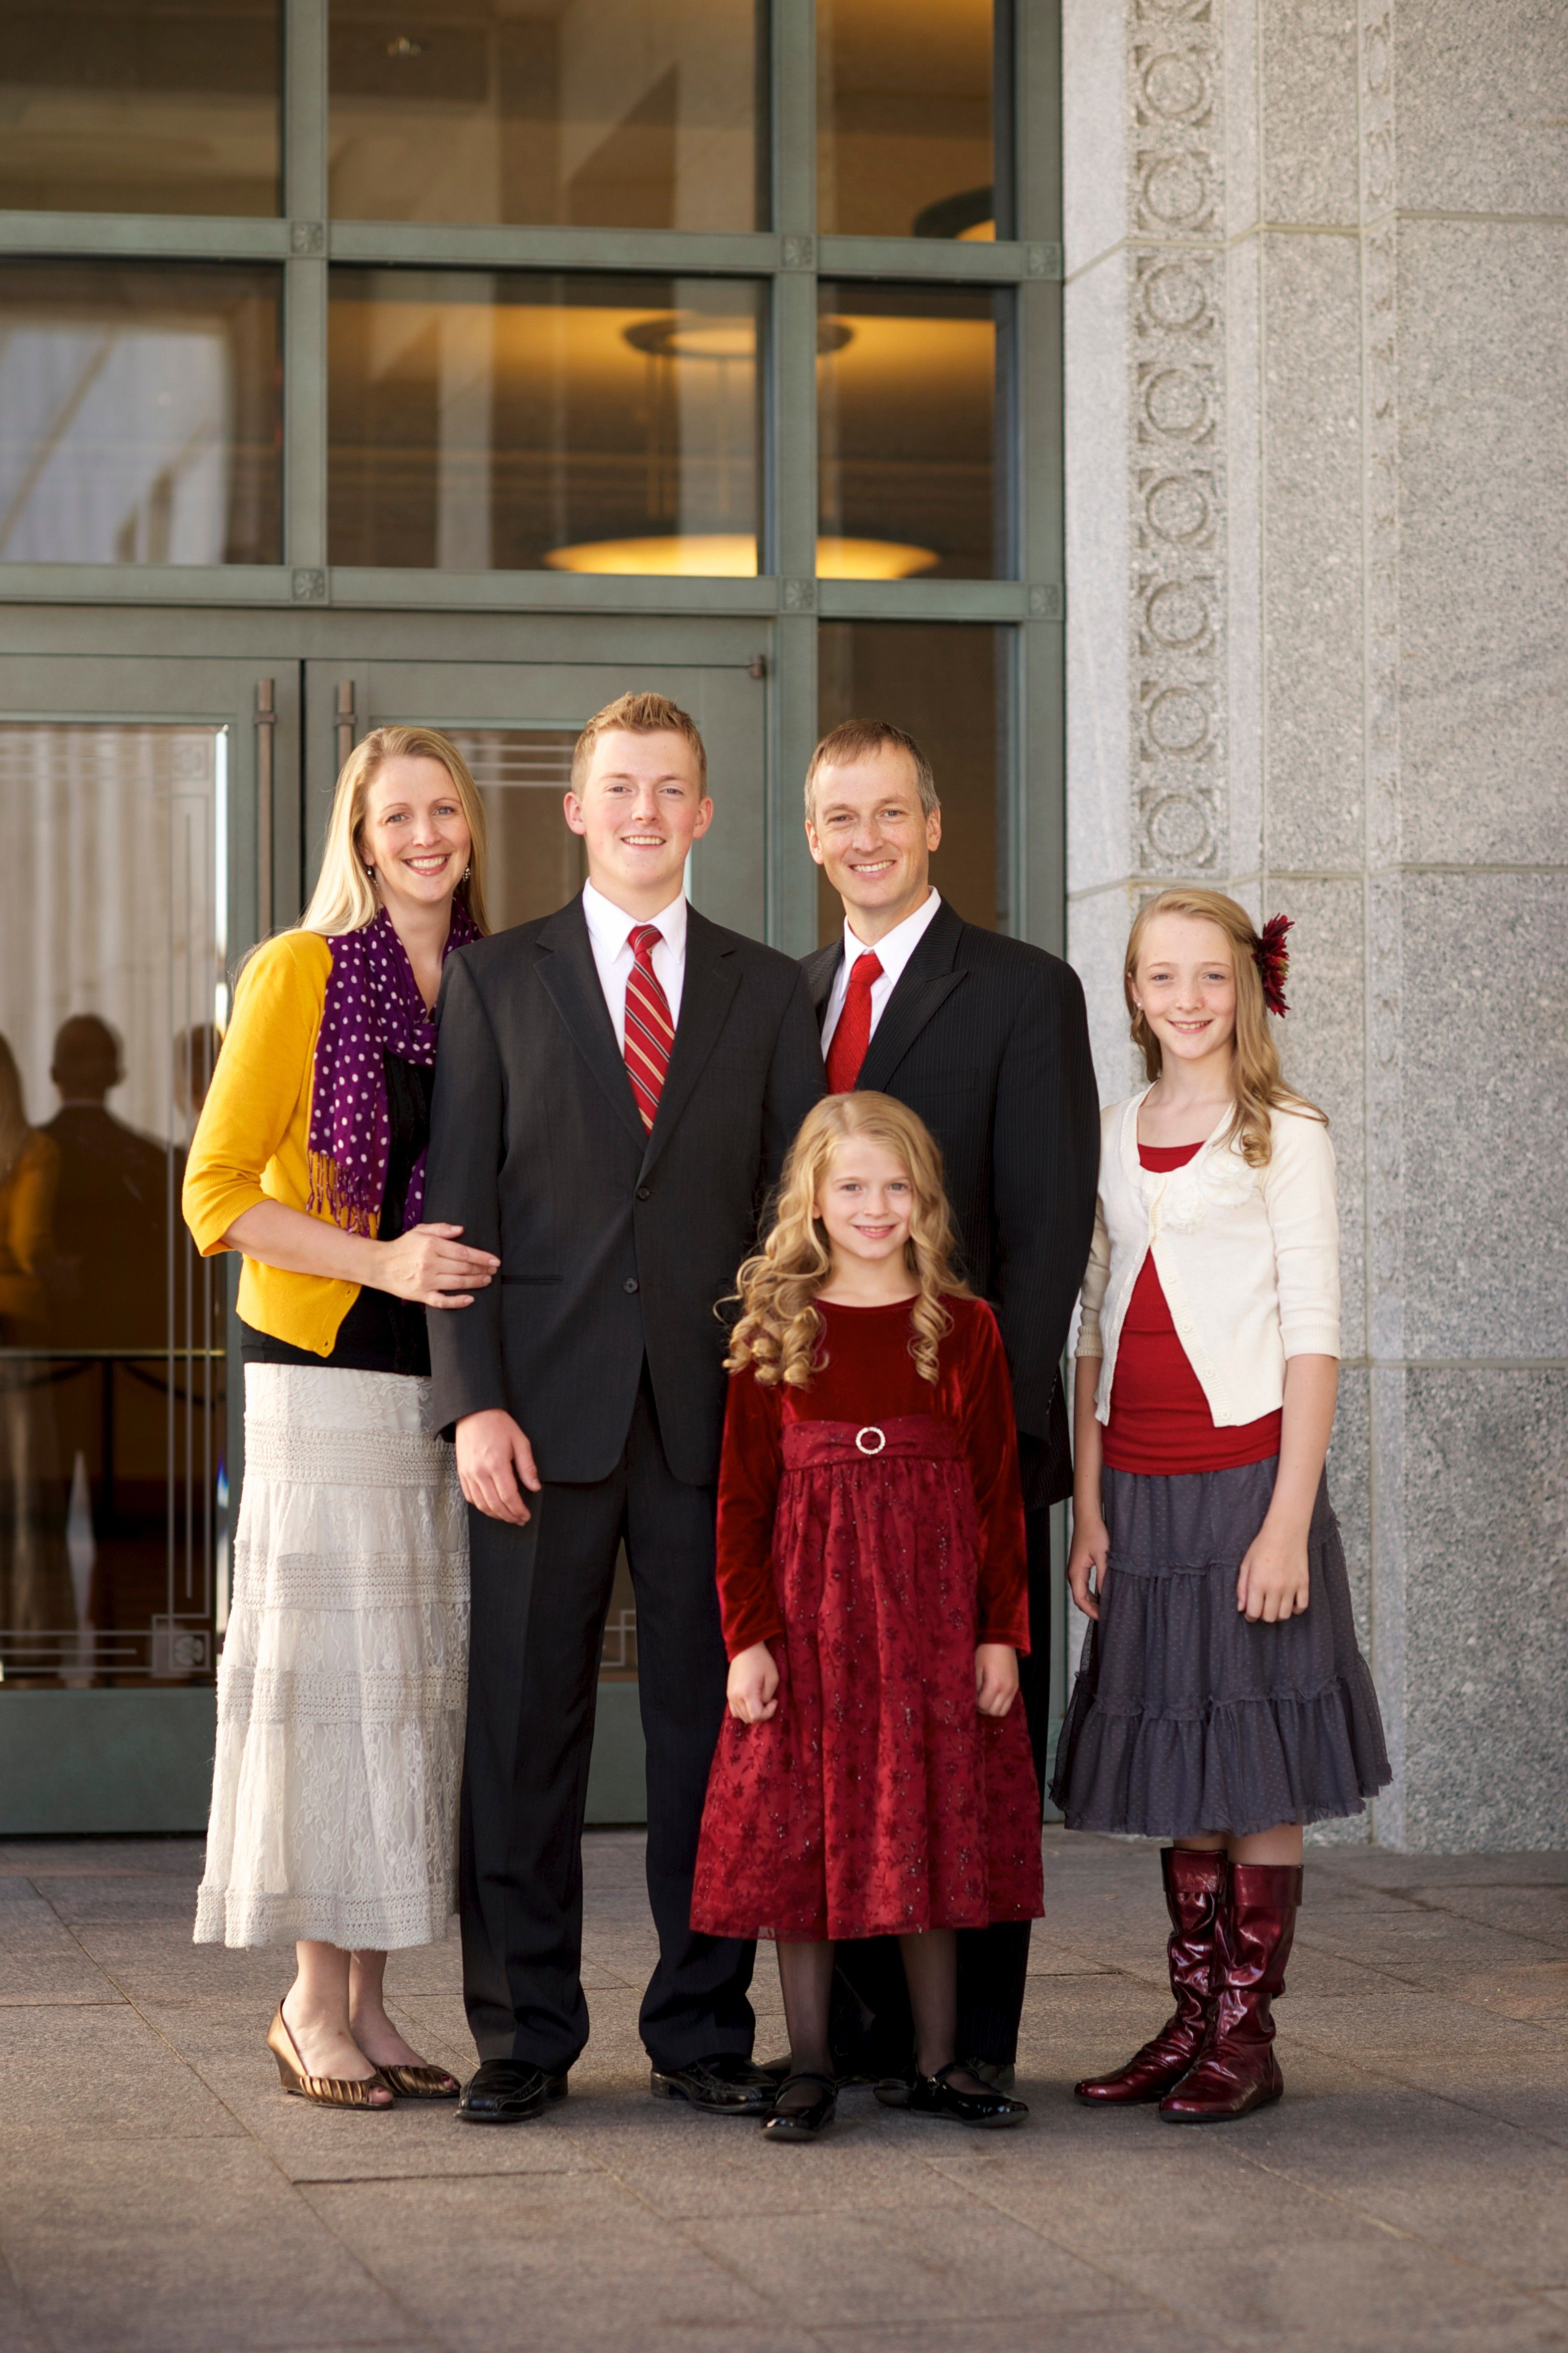 Two parents and their three children stand outside the doors of the Conference Center.